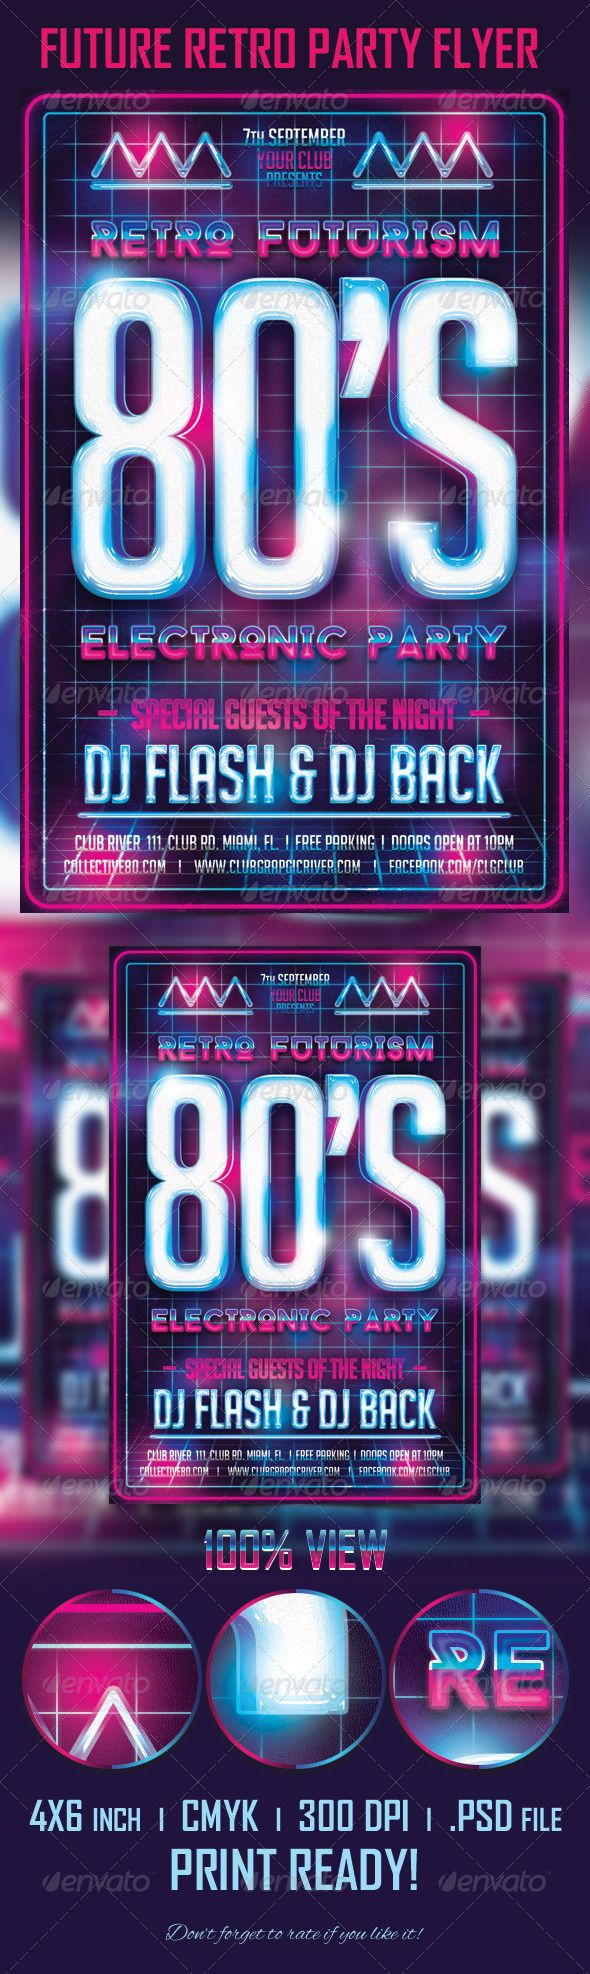 Future Retro Party Flyer Template | Flyer template, Retro party ...